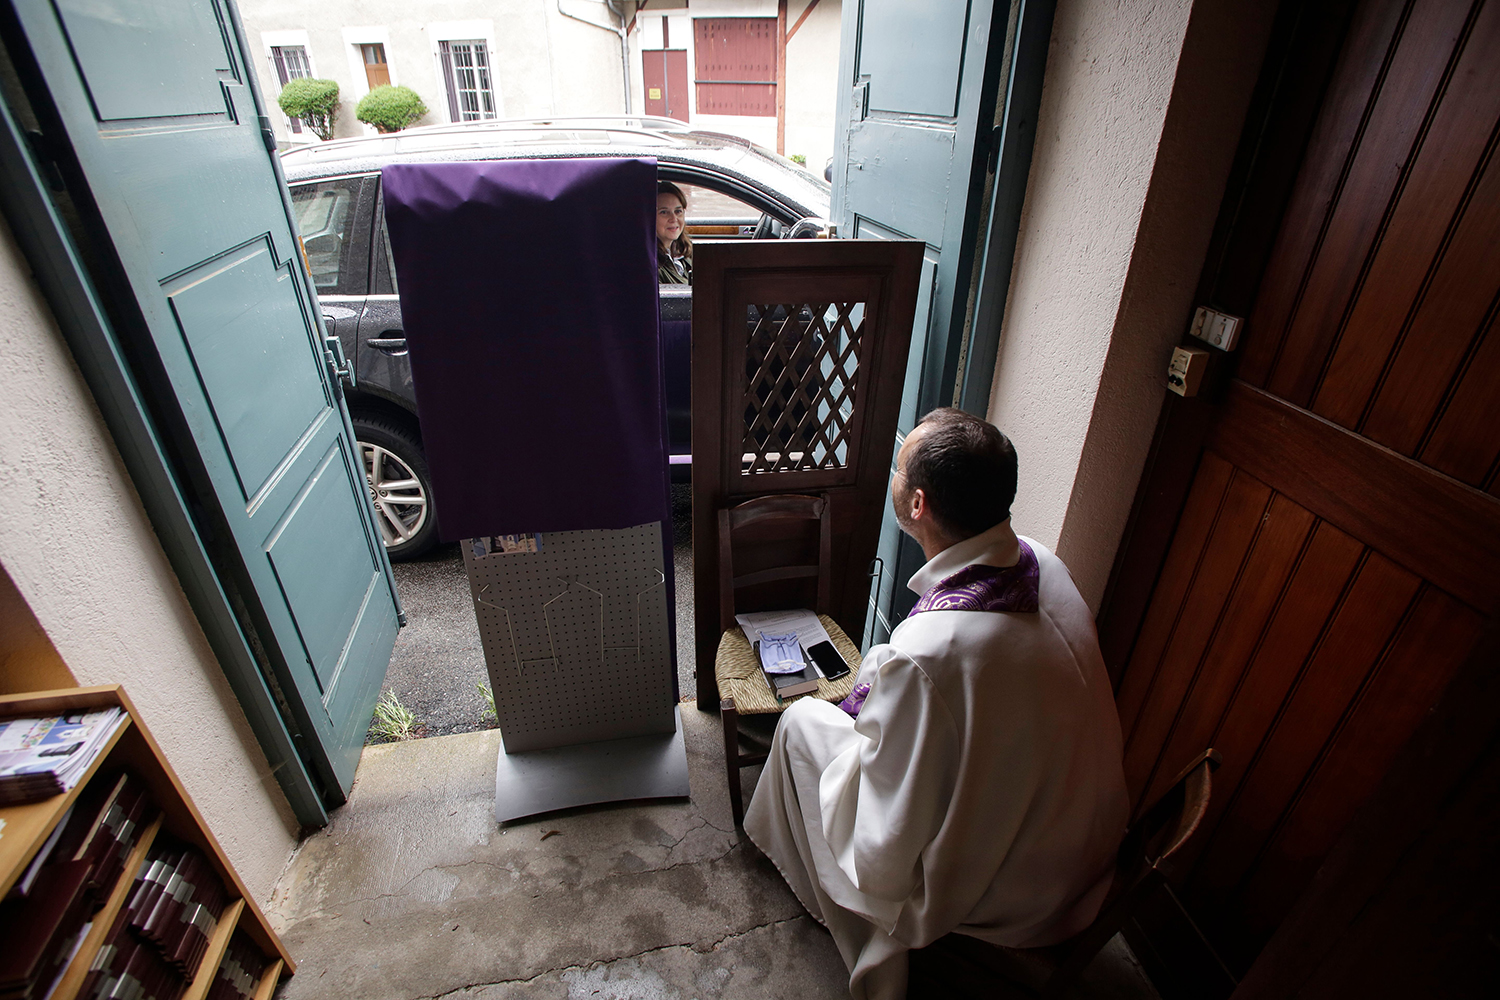 Catholic priest Vincent Poitau sits at an entrance to Sainte Jeanne d'Arc Church in Limoges, France, as a parishioner in a vehicle takes part in the sacrament of confession May 2. PASCAL LACHENAUD/AFP via Getty Images